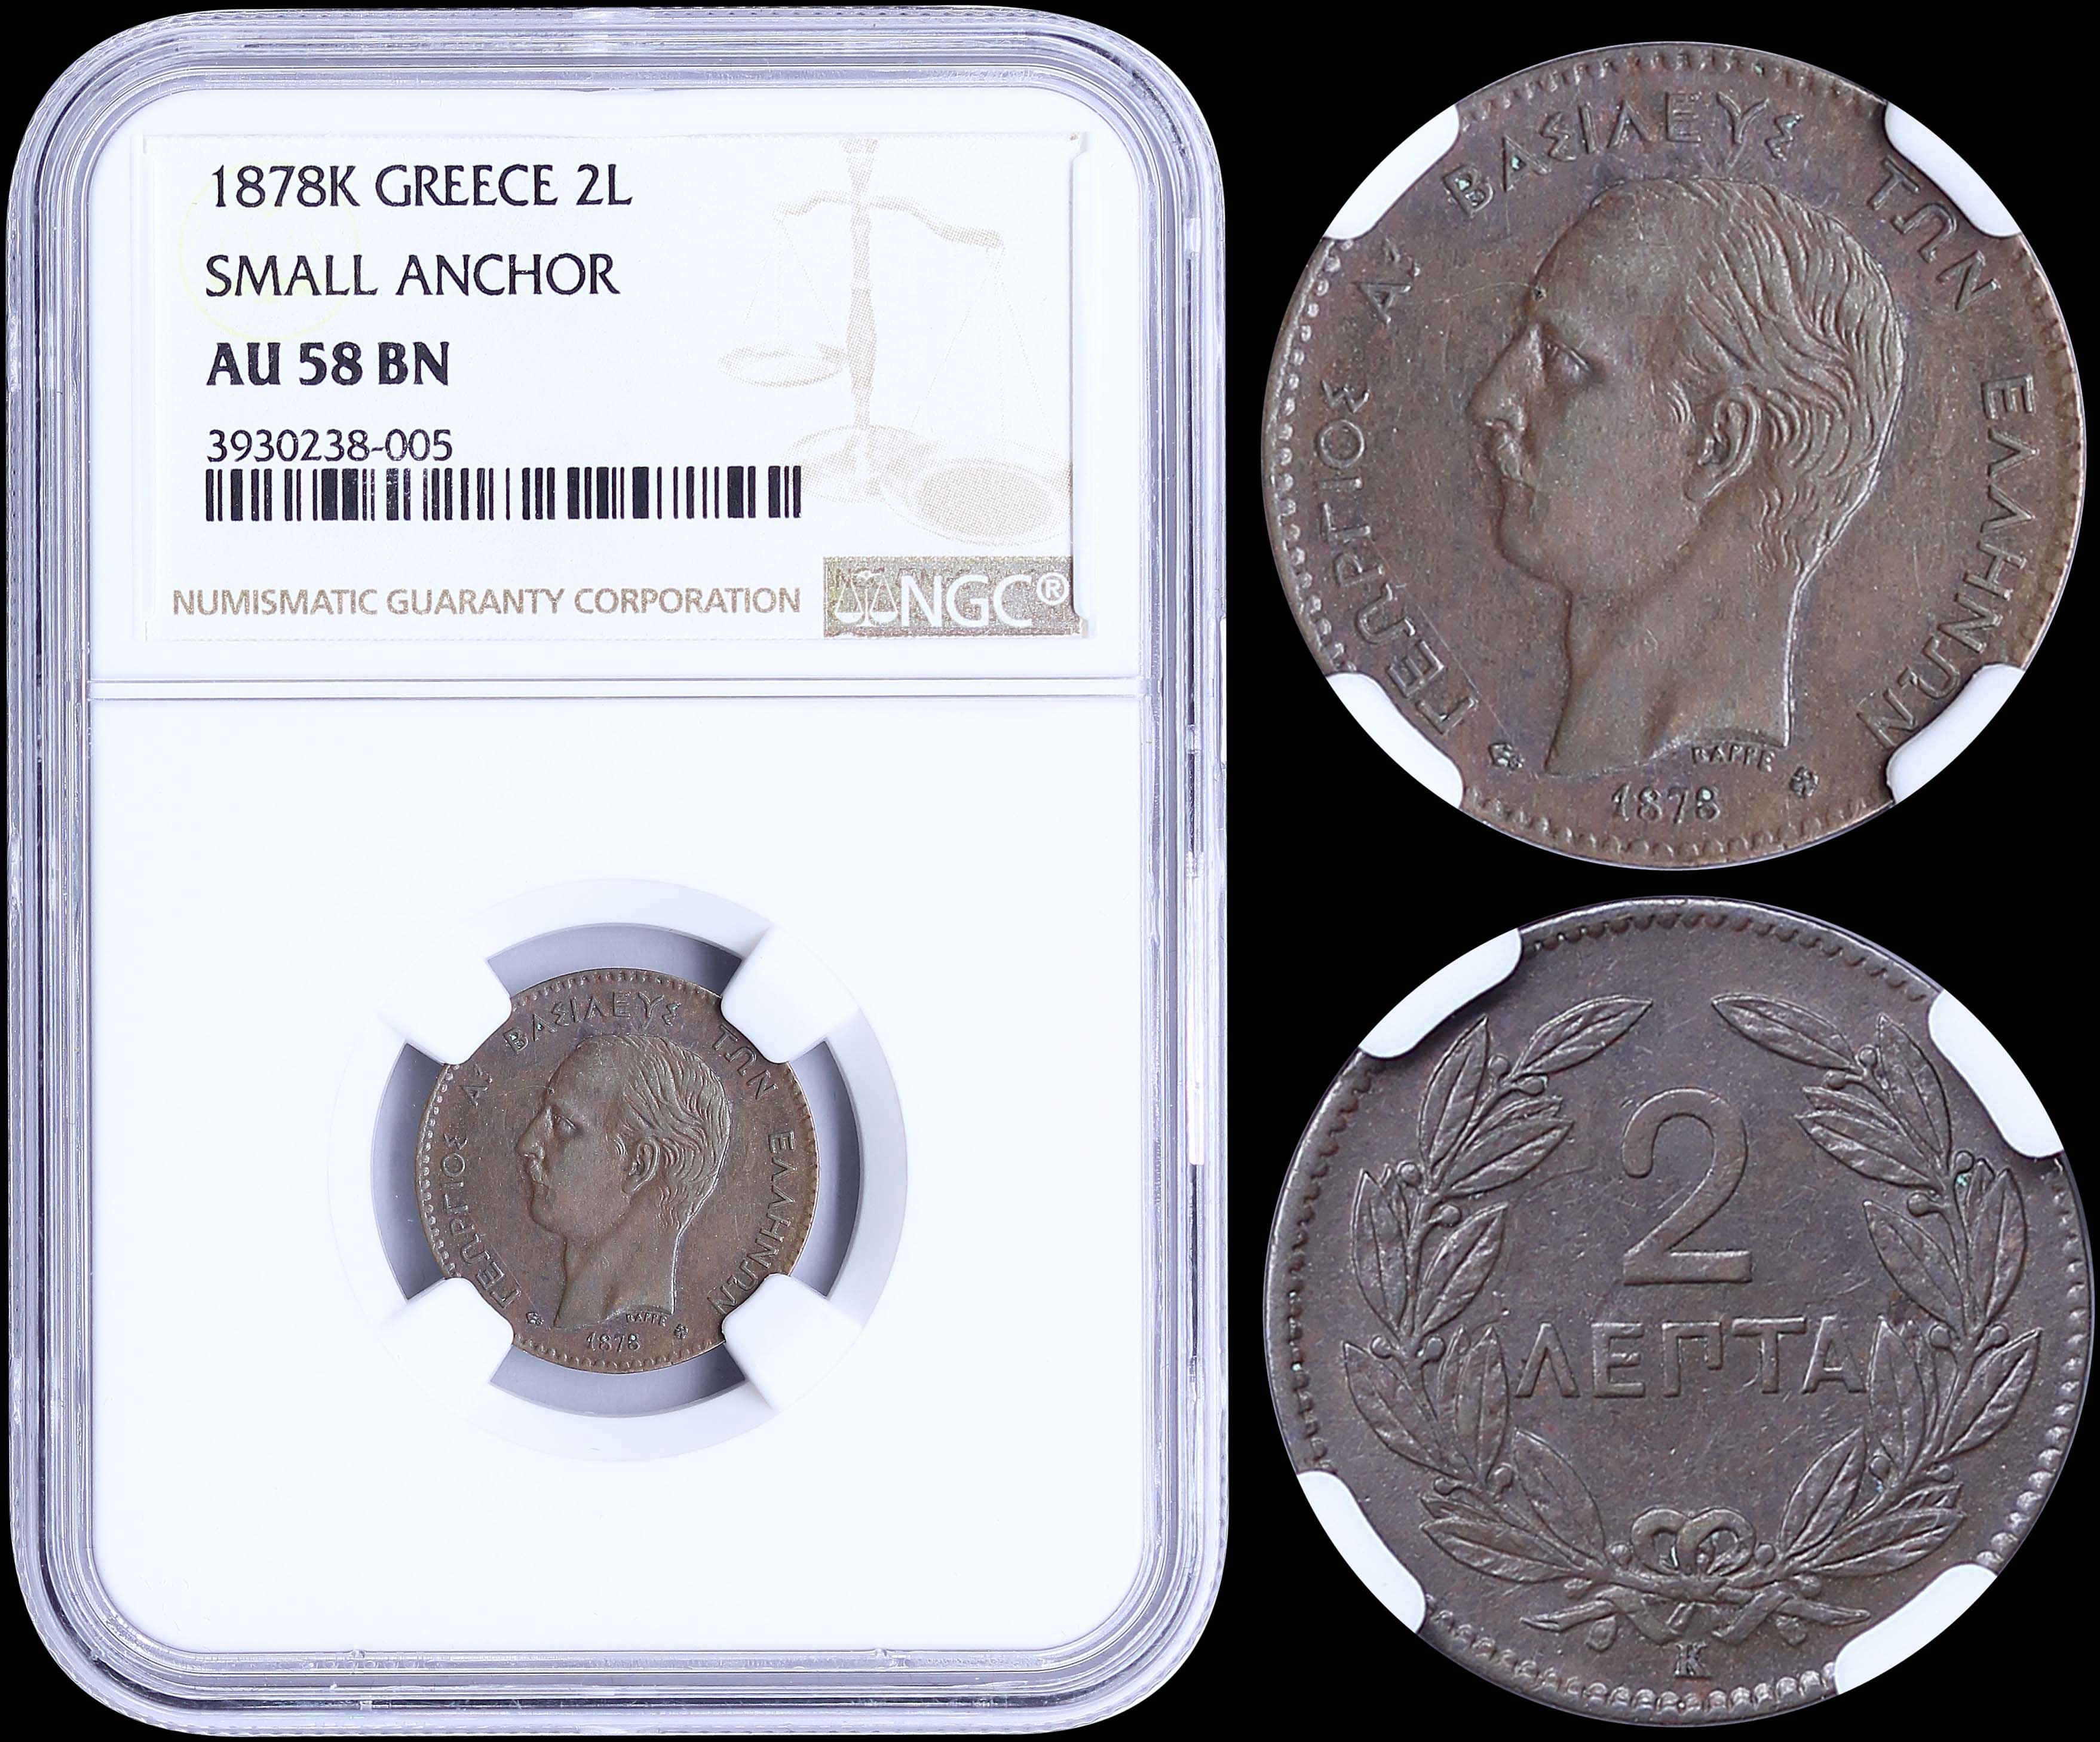 Lot 9089 - GREECE-  COINS & TOKENS king george i -  A. Karamitsos Public & LIVE Bid Auction 610 Coins, Medals & Banknotes